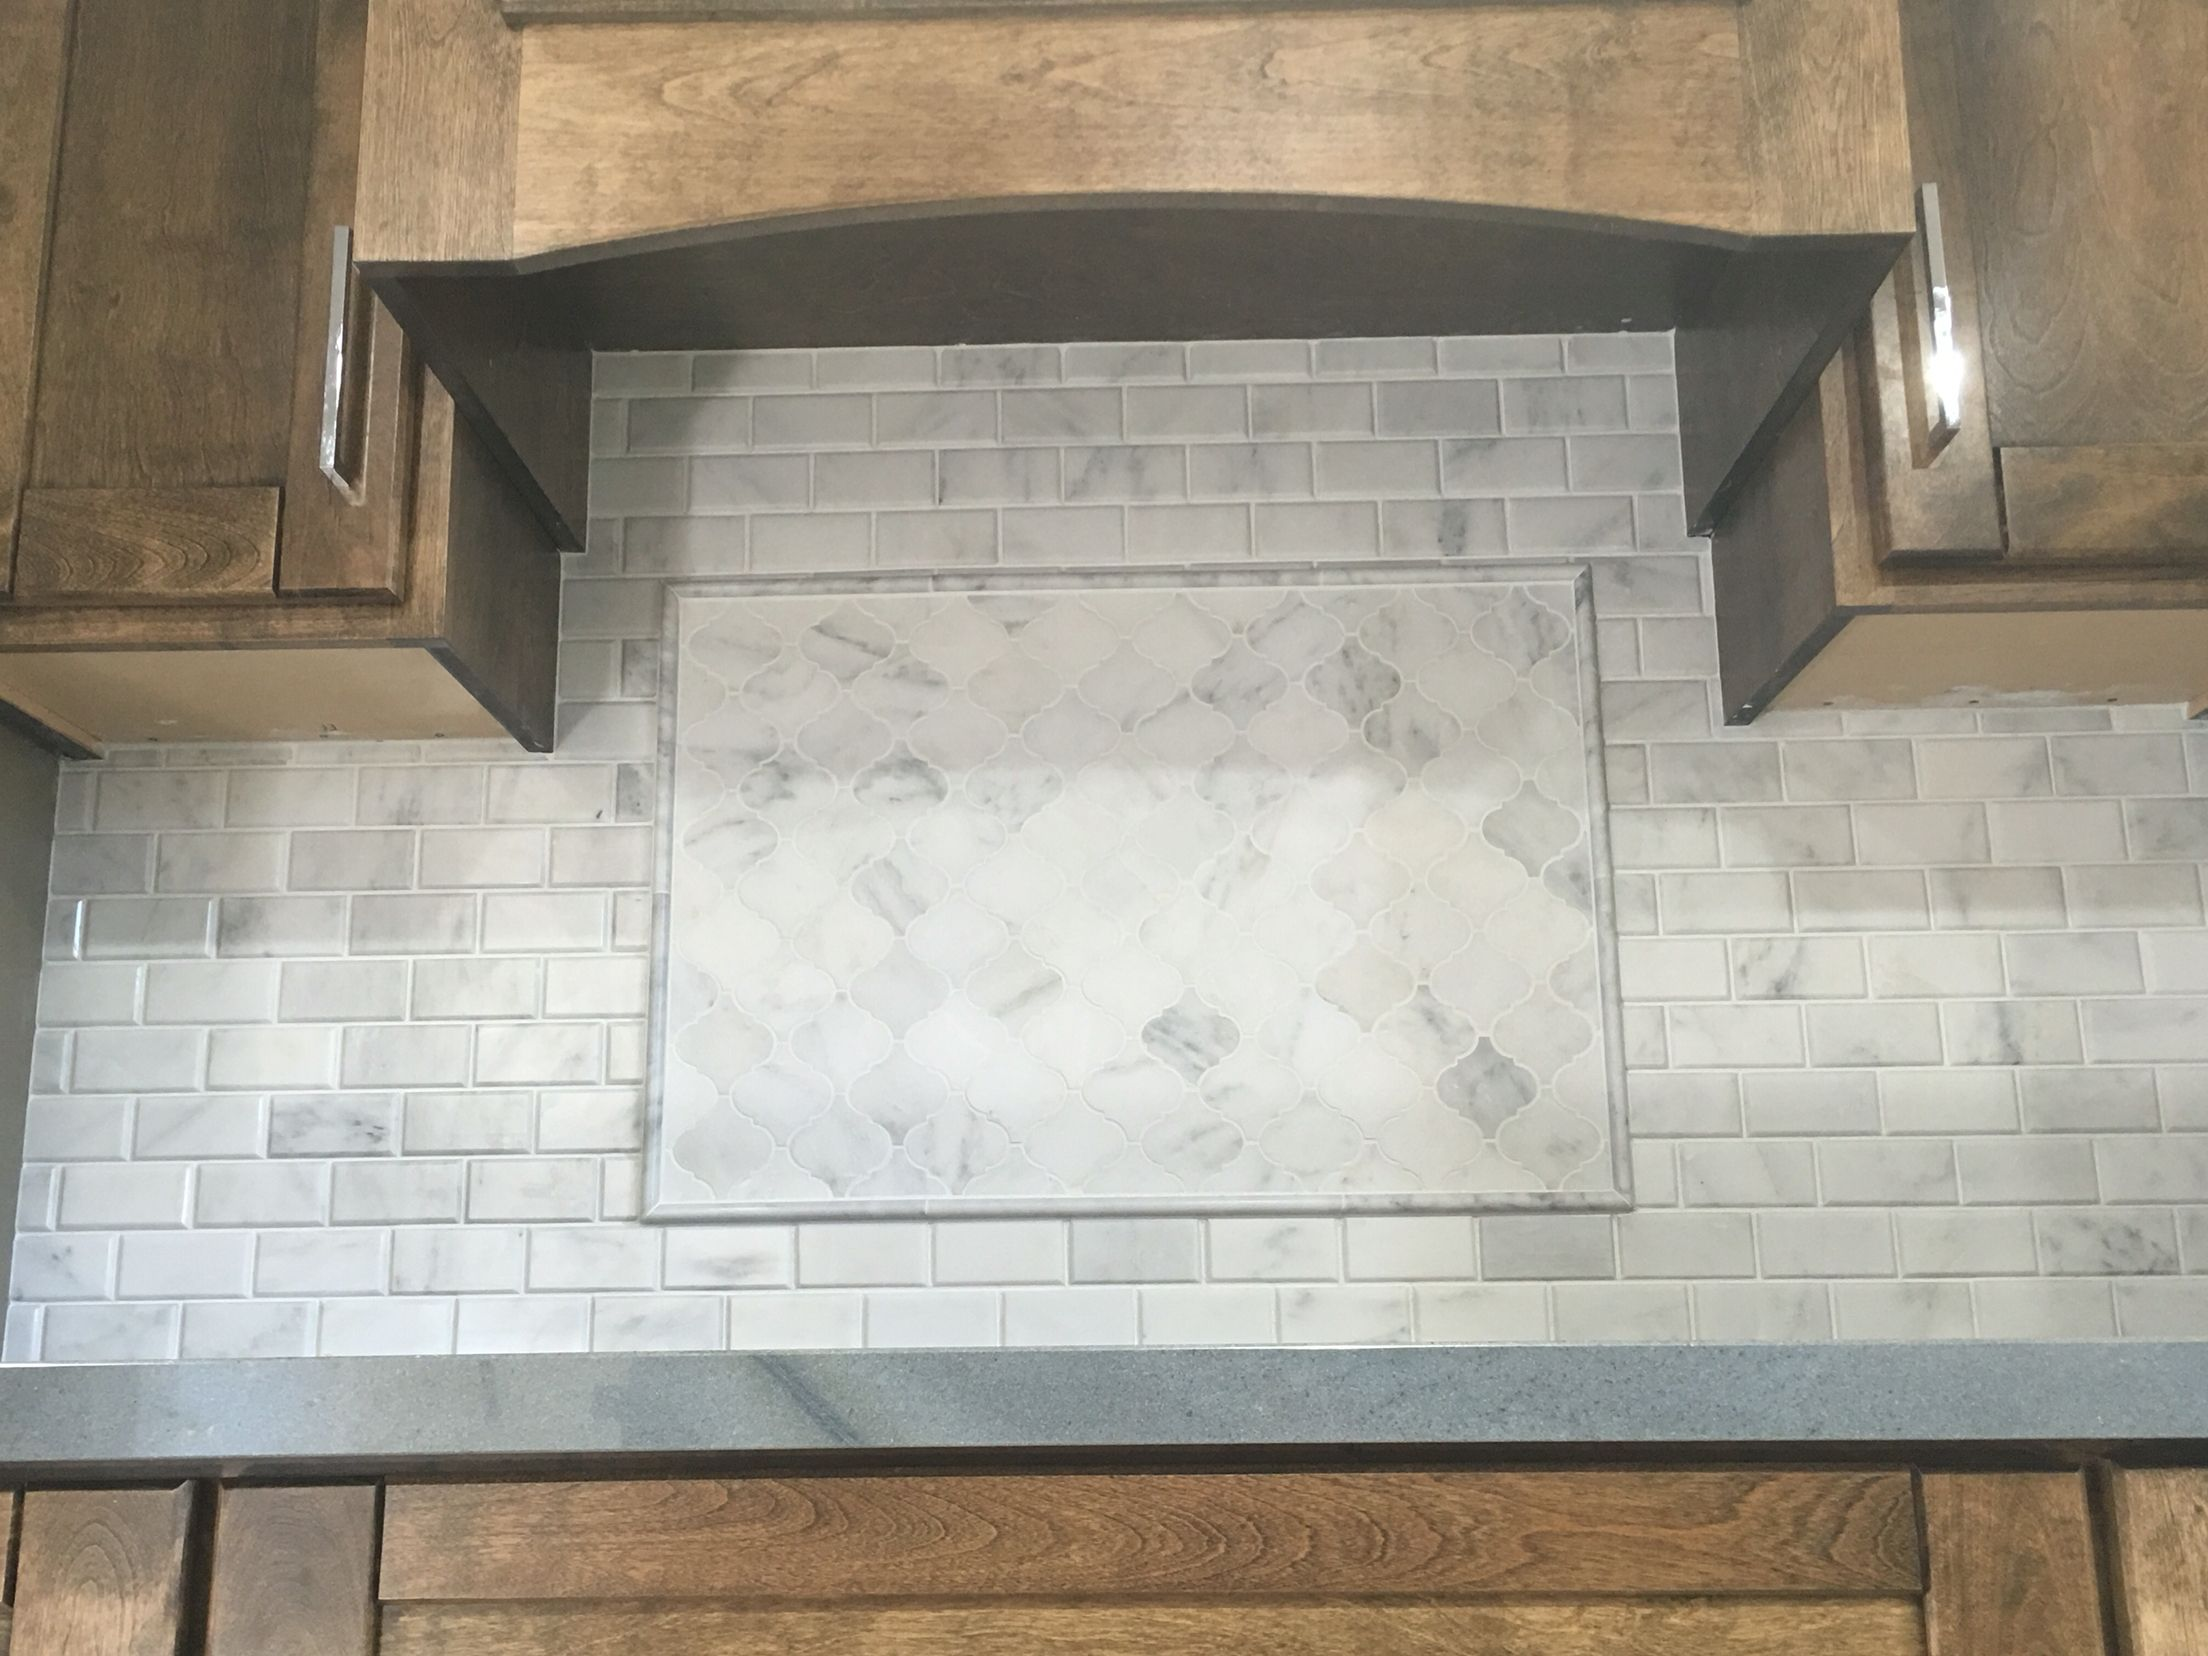 Kitchen backsplash Carrera subway tile Arabesque lantern mosaic